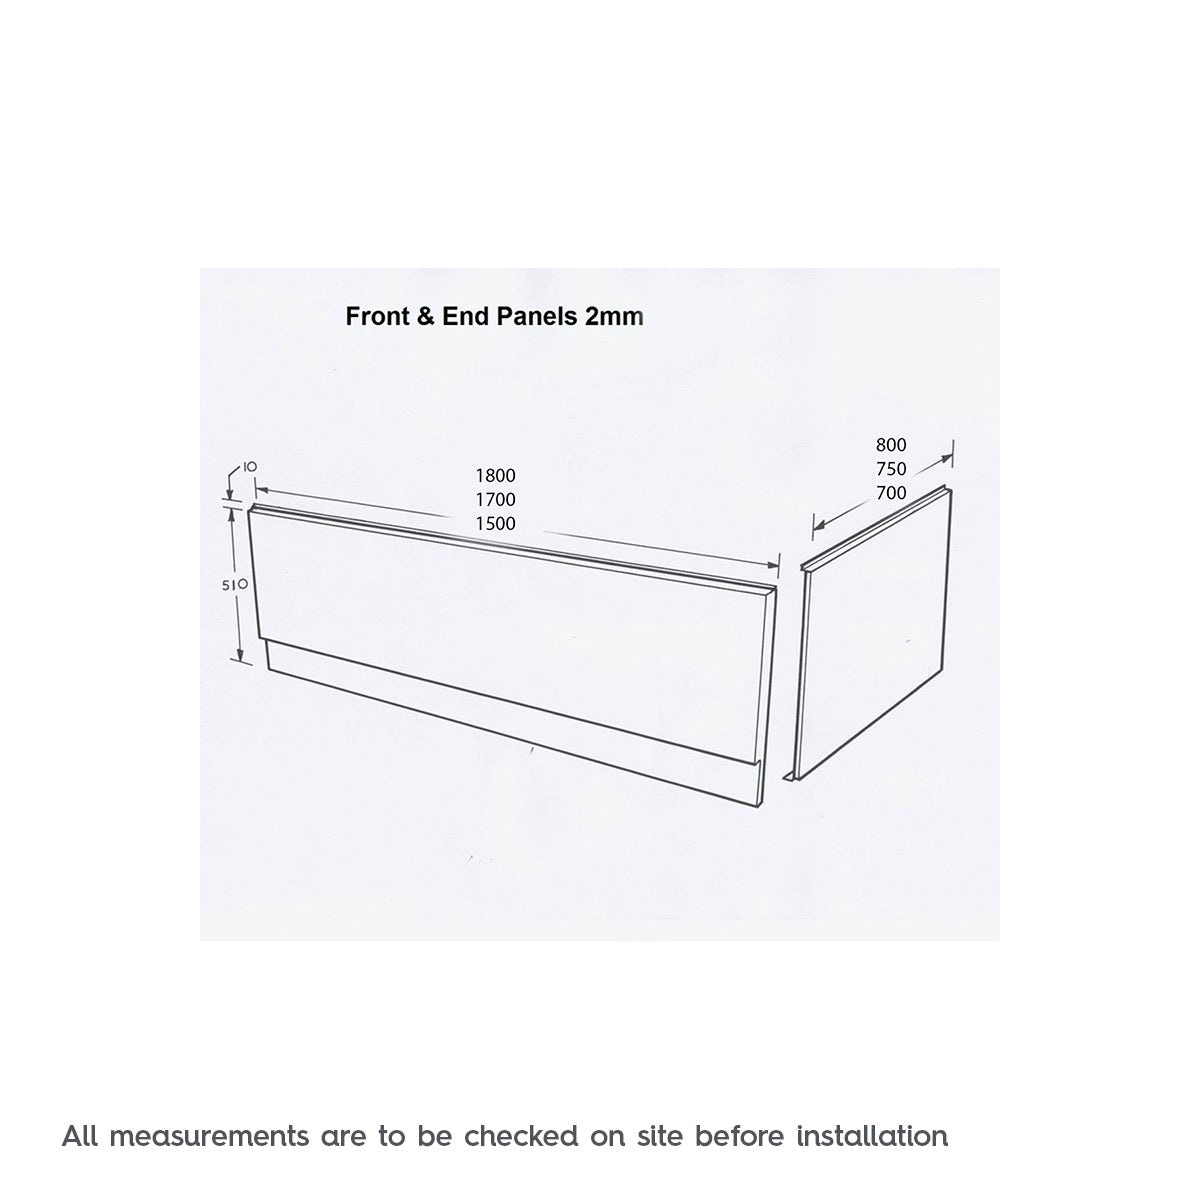 Dimensions for Orchard Acrylic straight bath front panel 1800mm